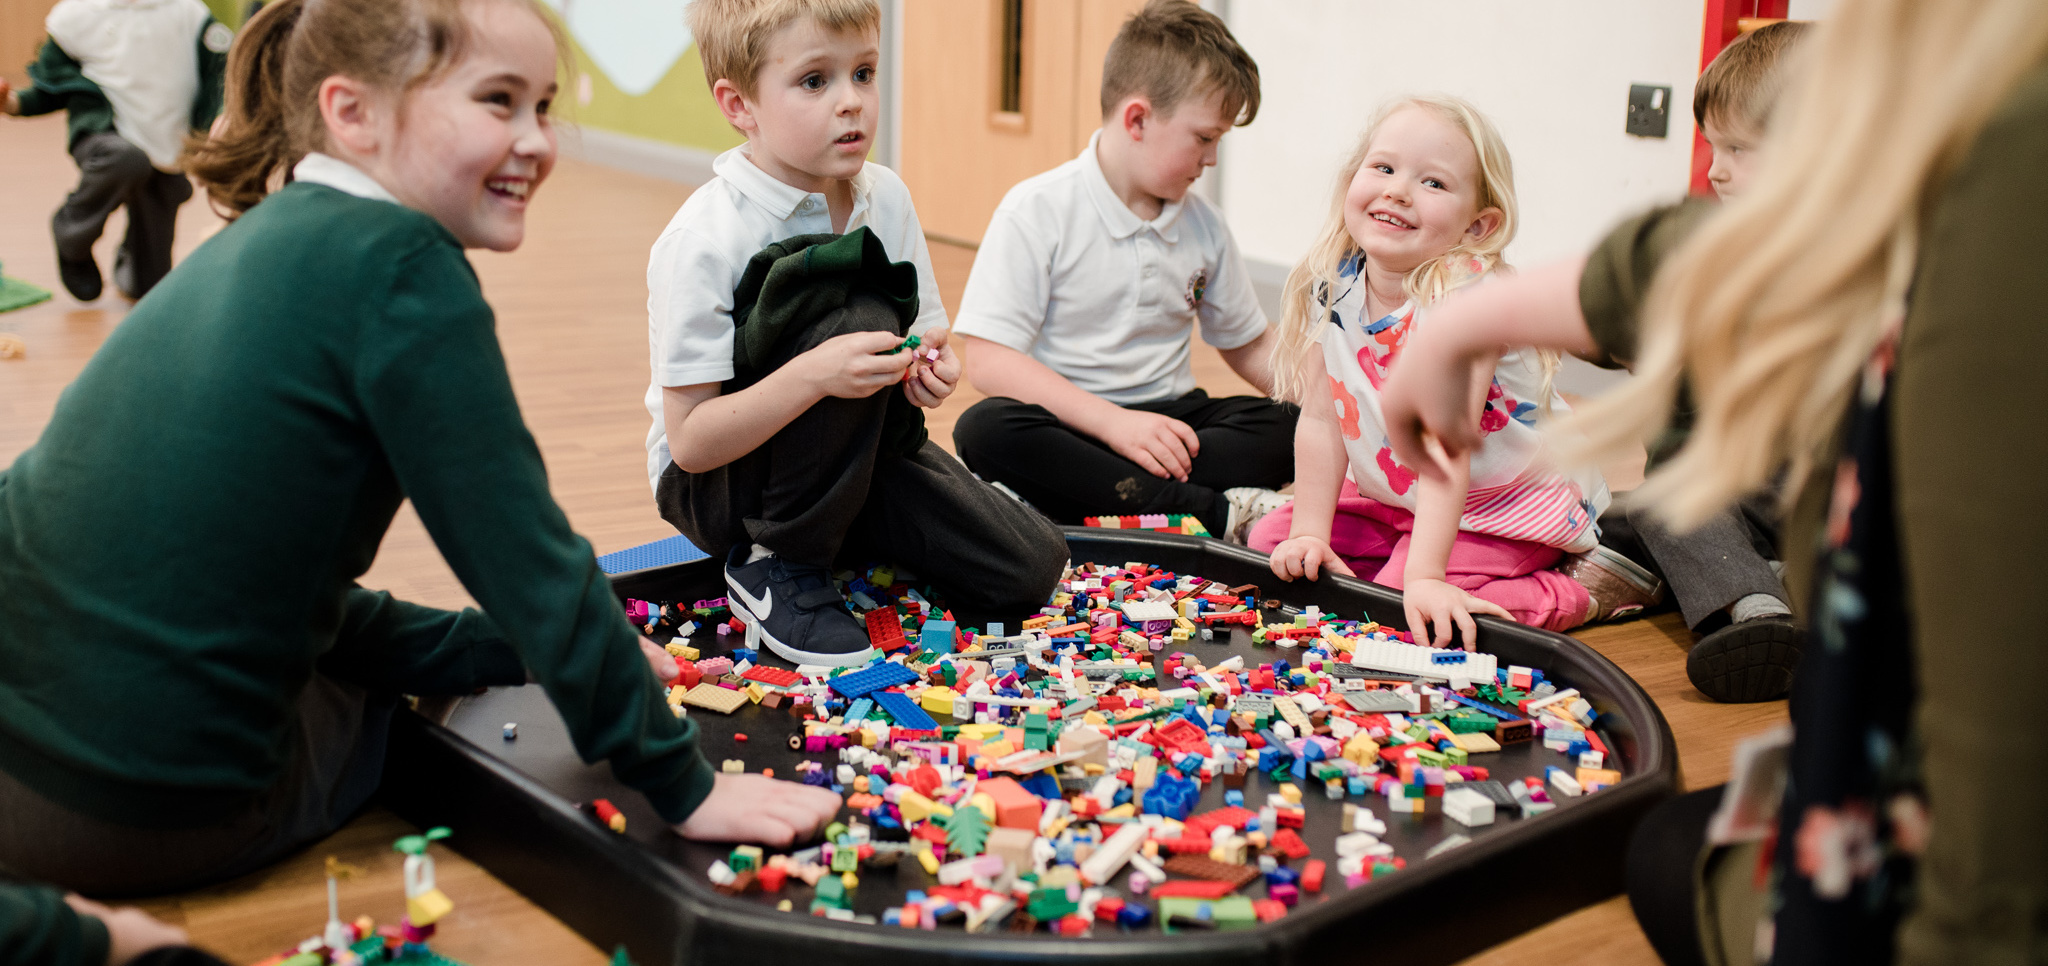 Children playing with lego in after school club